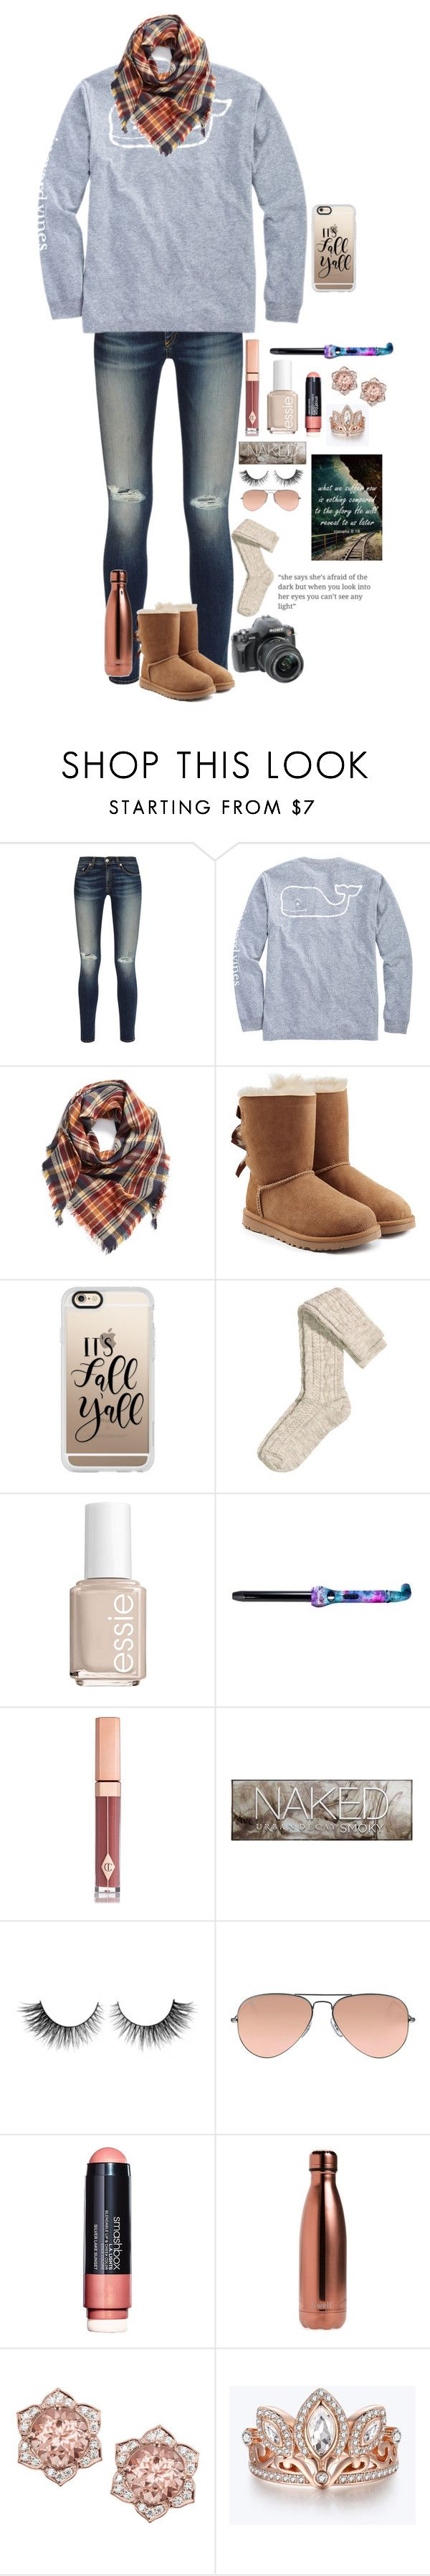 """""""Romans 8:18"""" by maxilicious ❤ liked on Polyvore featuring rag & bone, Vineyard Vines, BP., UGG, Casetify, H&M, Essie, Eva NYC, Charlotte Tilbury and Urban Decay"""